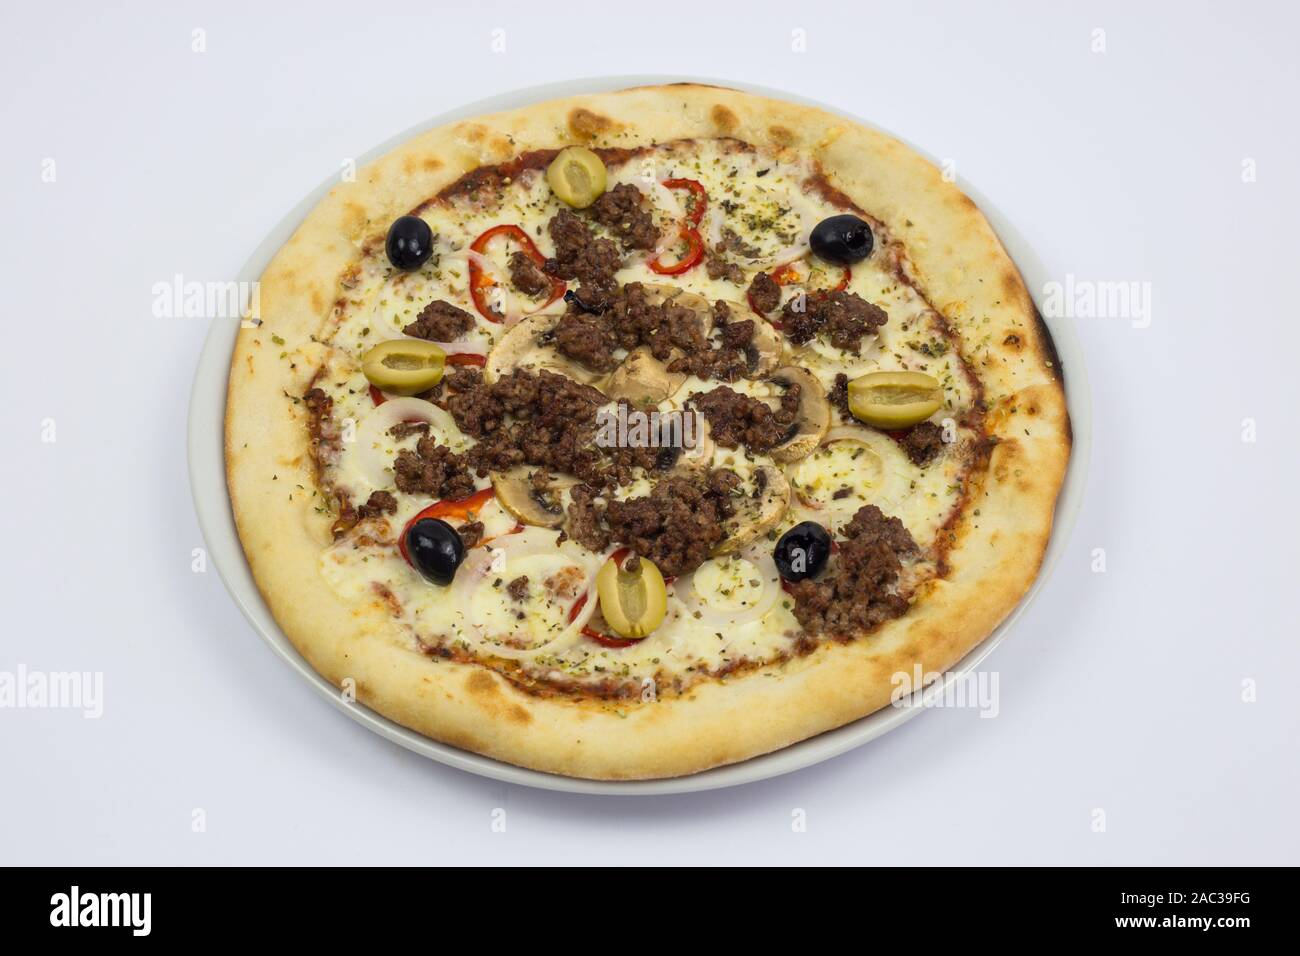 Pizza With Olives Fast Food Restaurant Decoration Pizza On A White Background Stock Photo Alamy